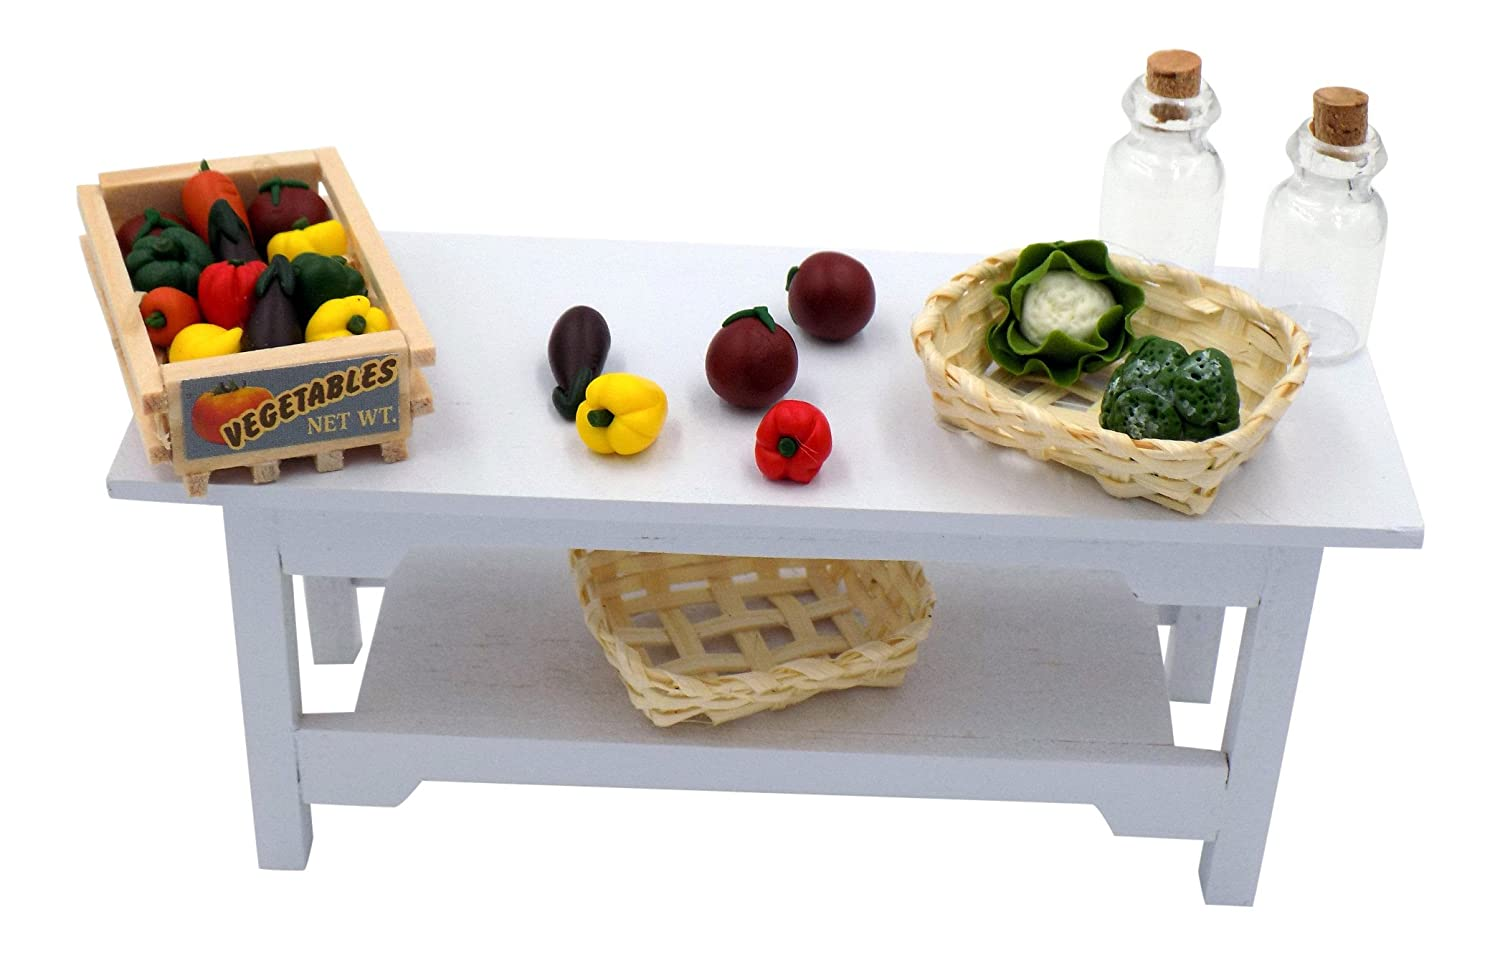 Kitchen Dollhouse Miniatures - Table w/ Baskets, Reproduction Fruit Crate, Vegetables and Glass Bottles - Darice Timeless Minis Food Bundle 1 12 Scale – Dollhouse or Fairy Garden will Come to Life